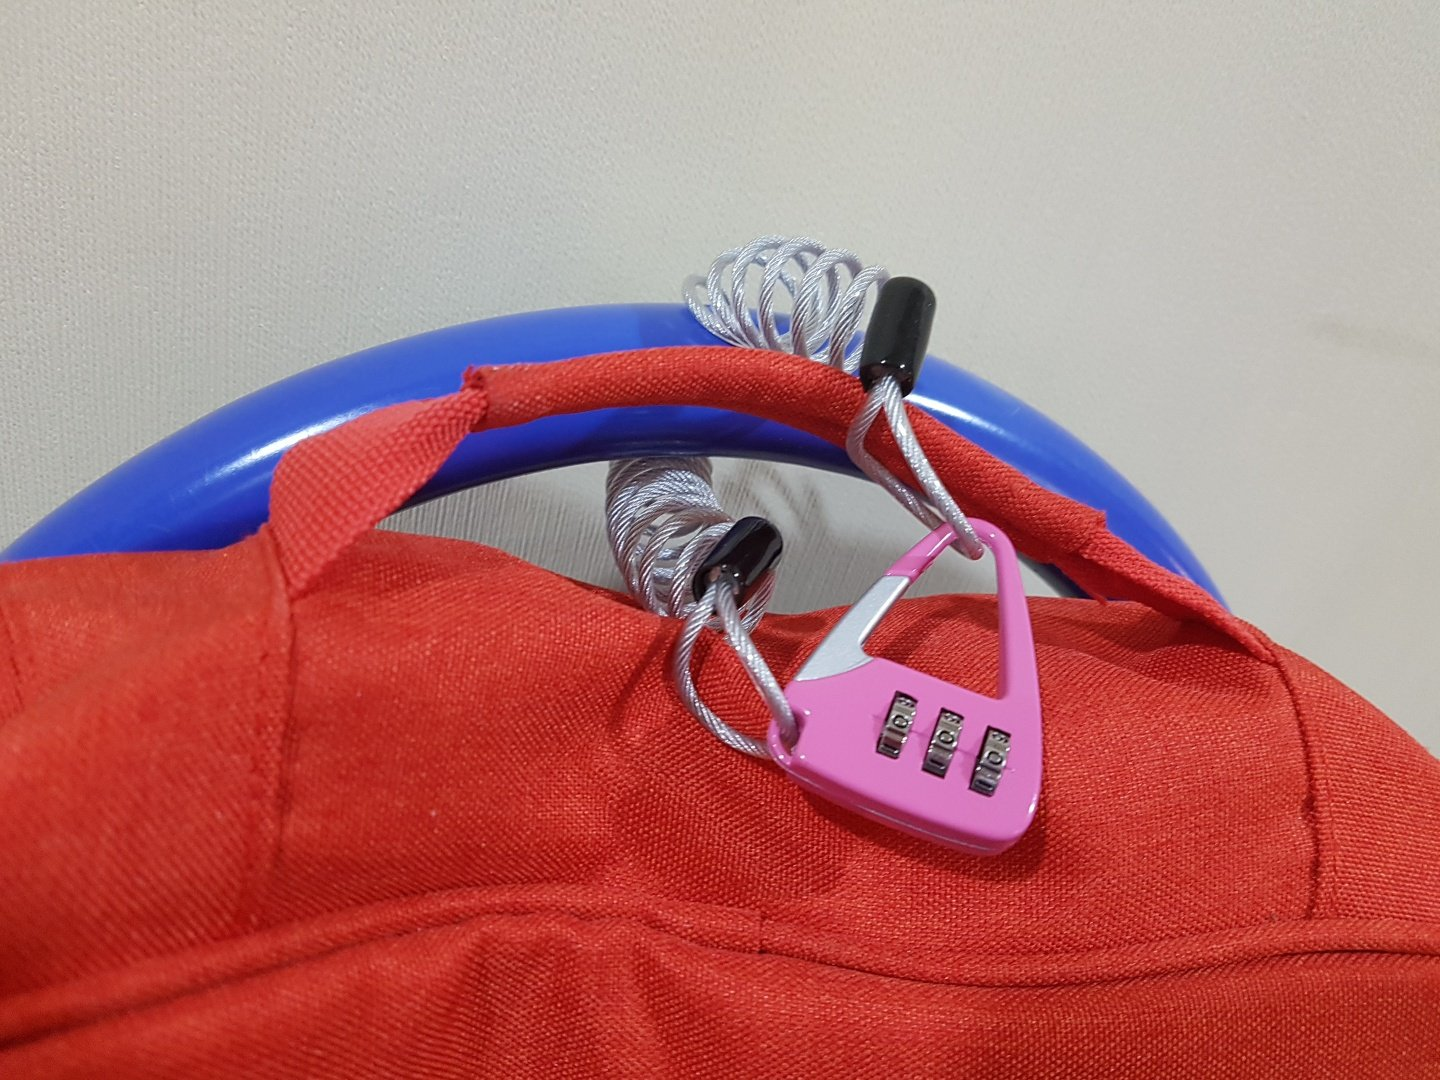 or Locker Daiso Multi Purpose Cable Wired Lock with for Luggage School Bags